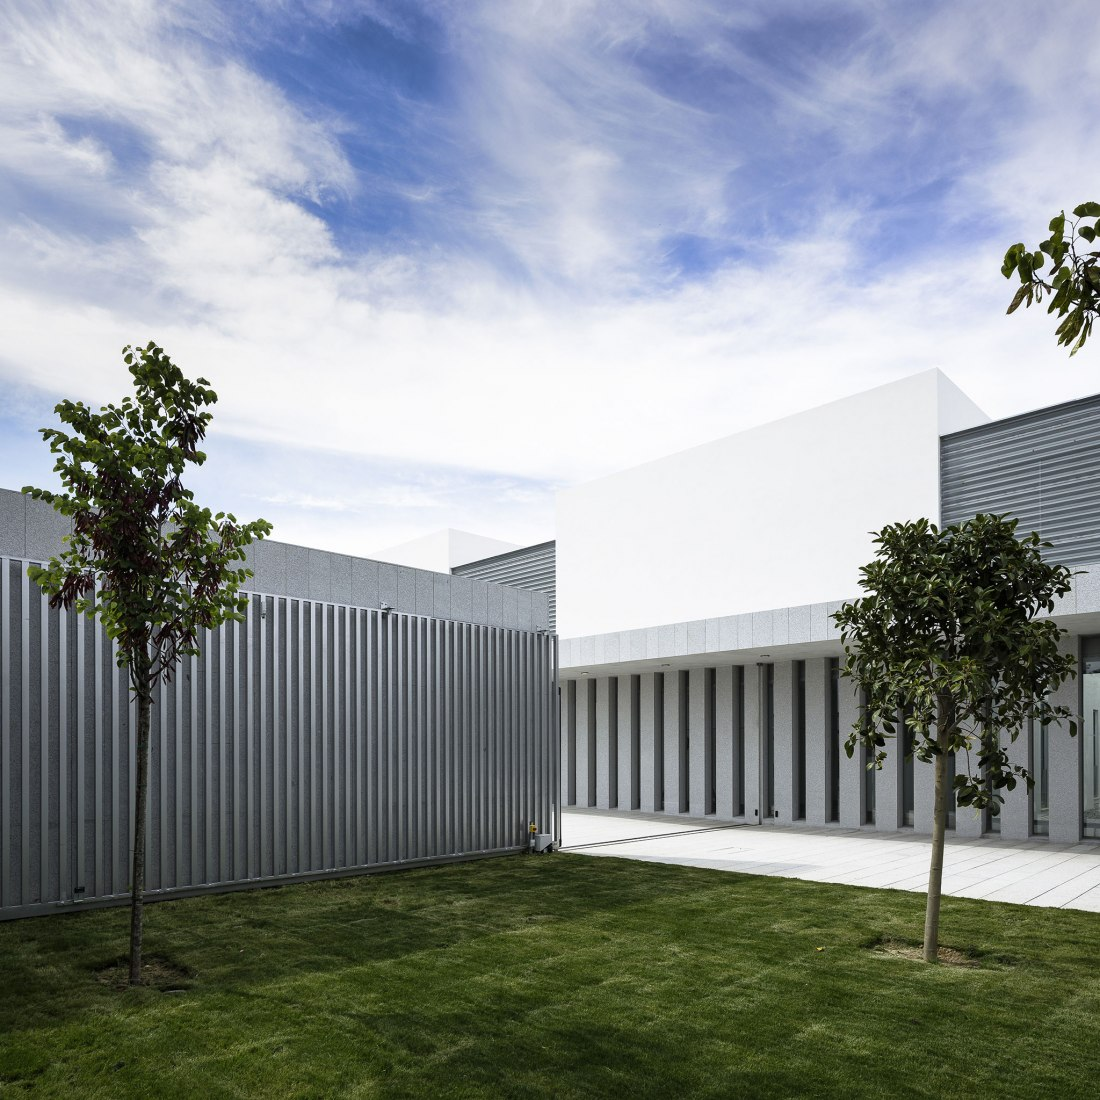 Health centre at Gibraleón by Javier Terrados. Photograph by Fernando Alda